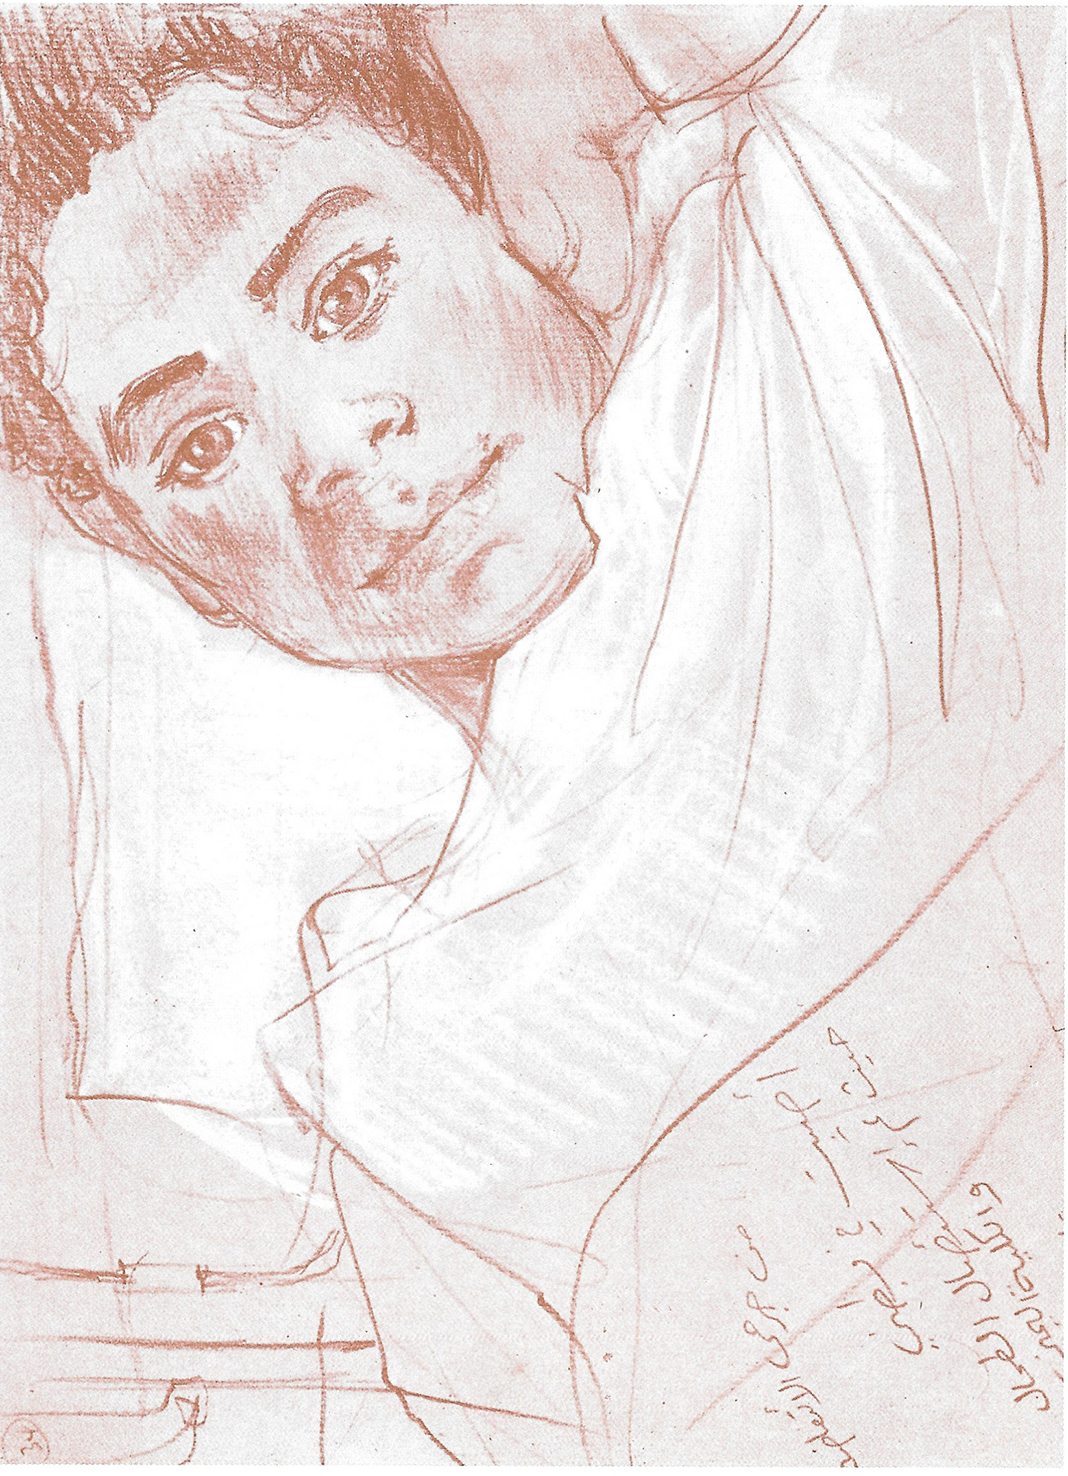 drawing of a young person in bed